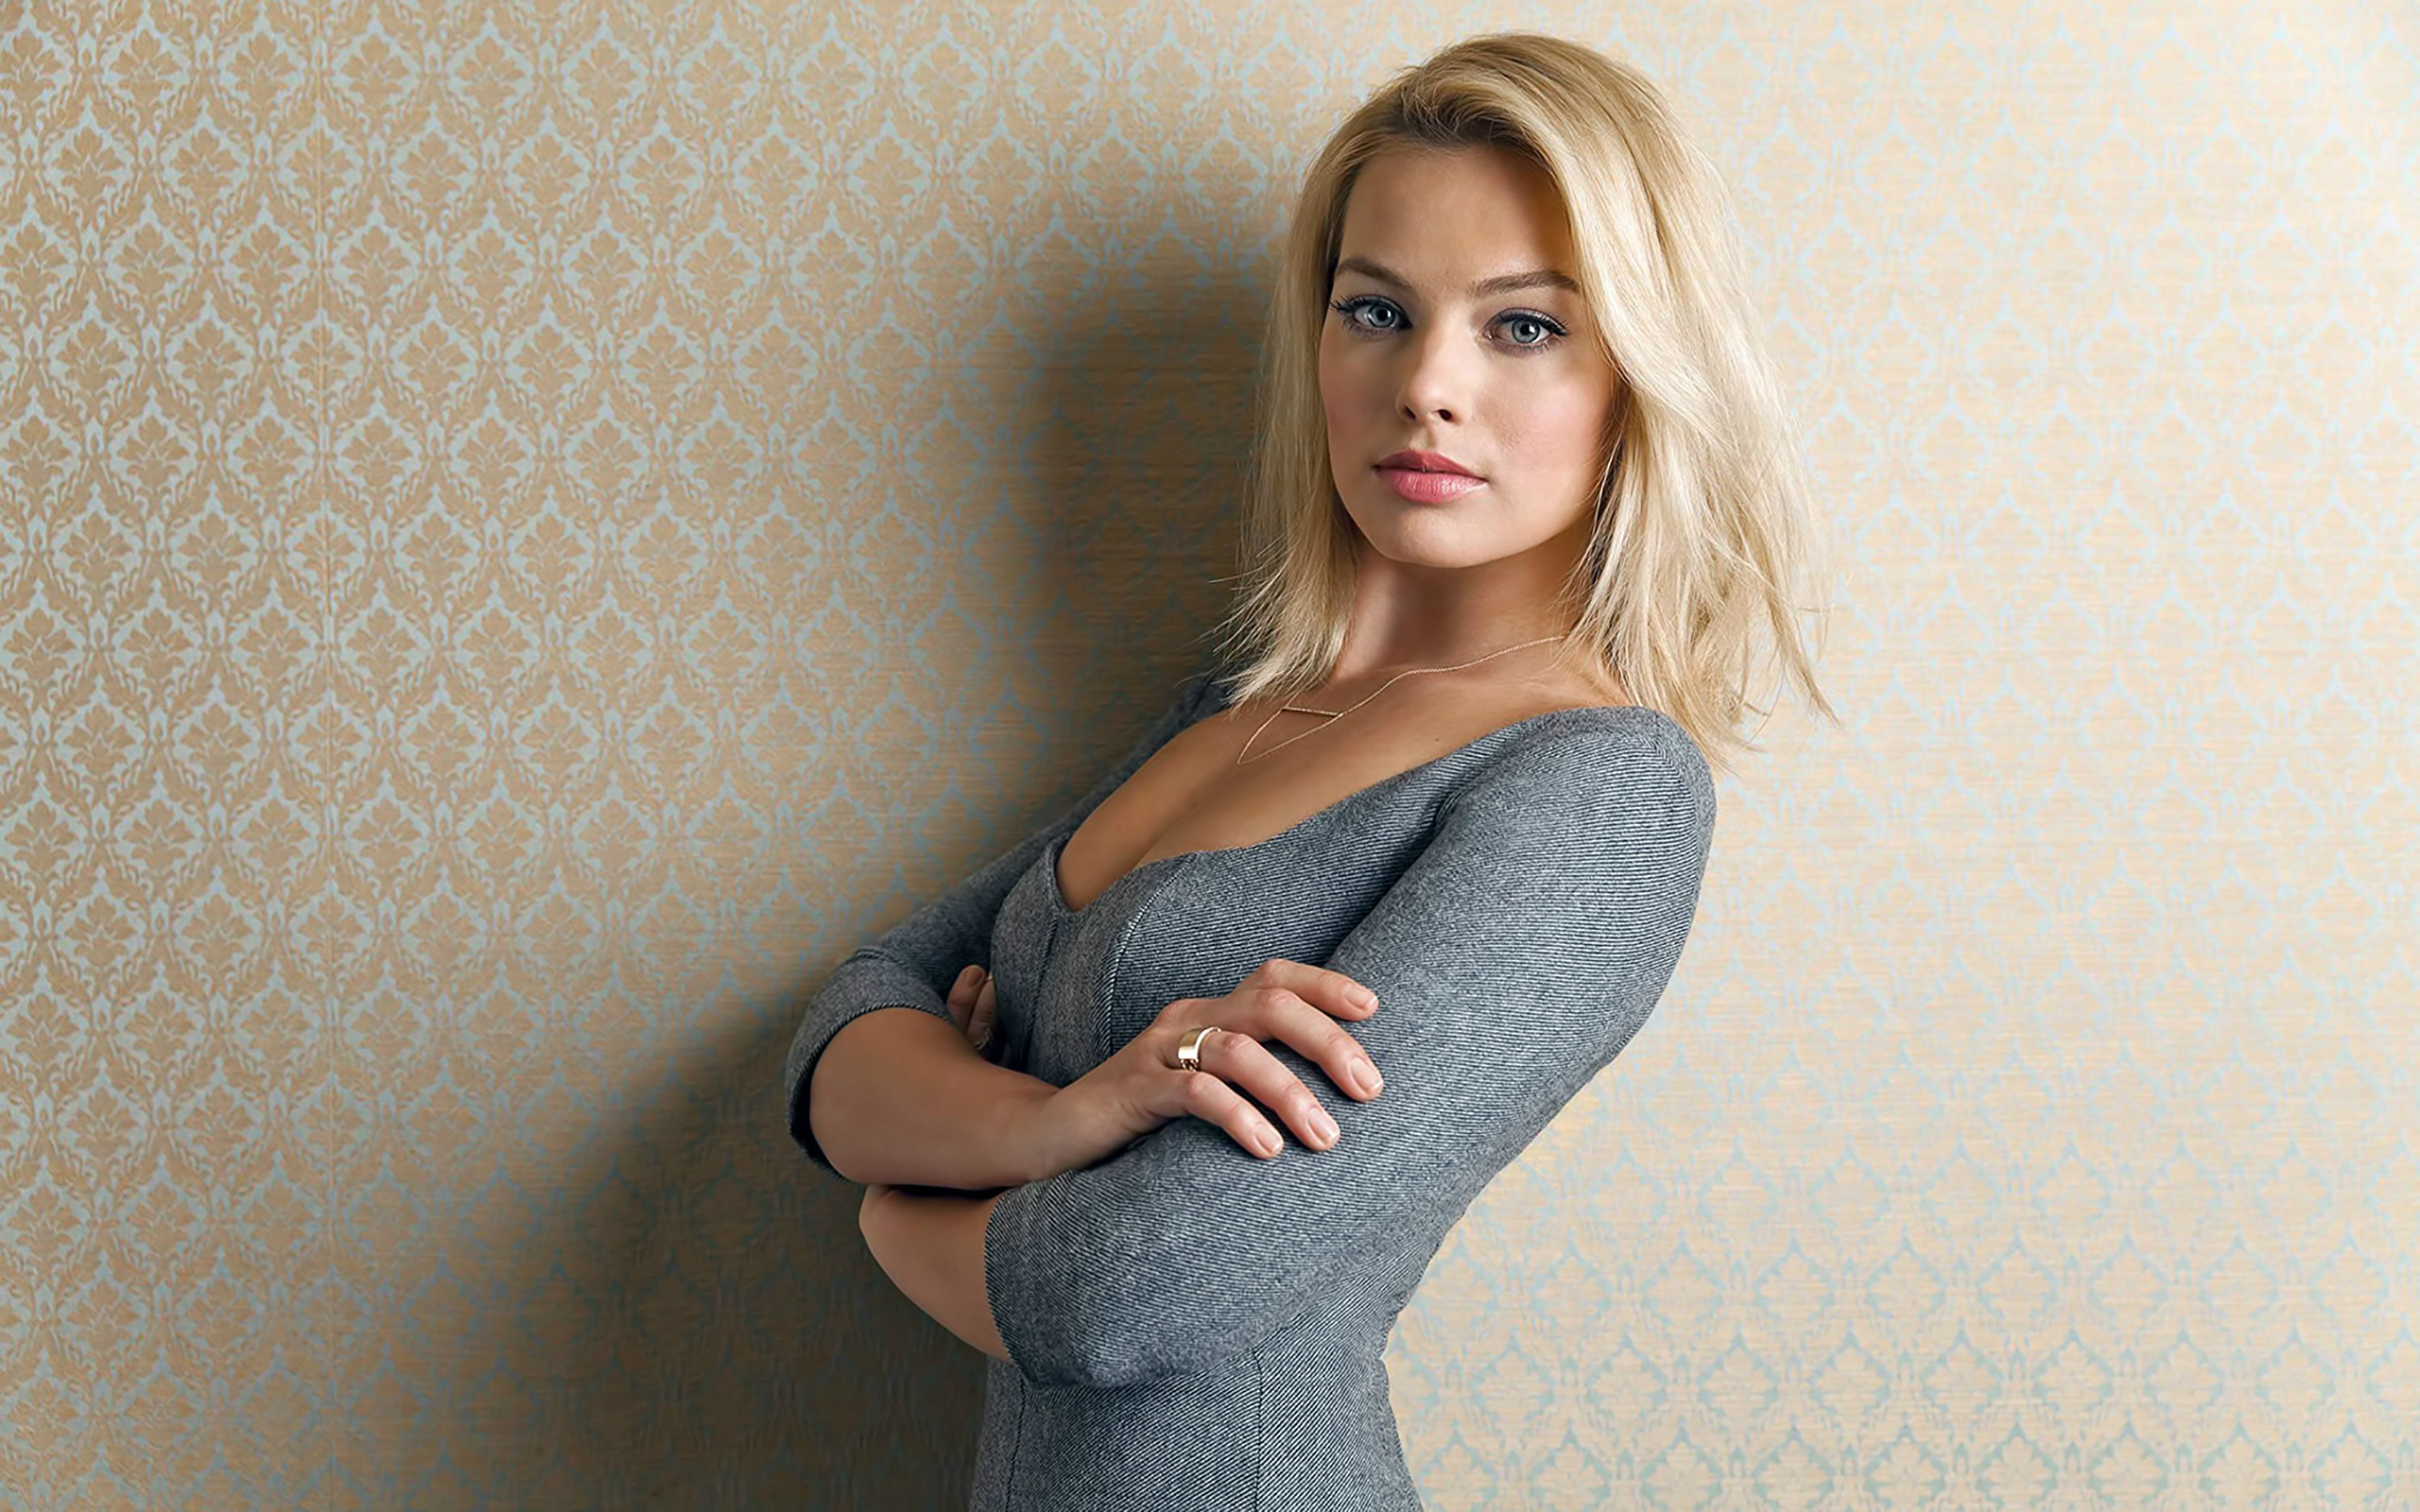 margot-robbie-hot-and-sexy-leaked-photoshoots